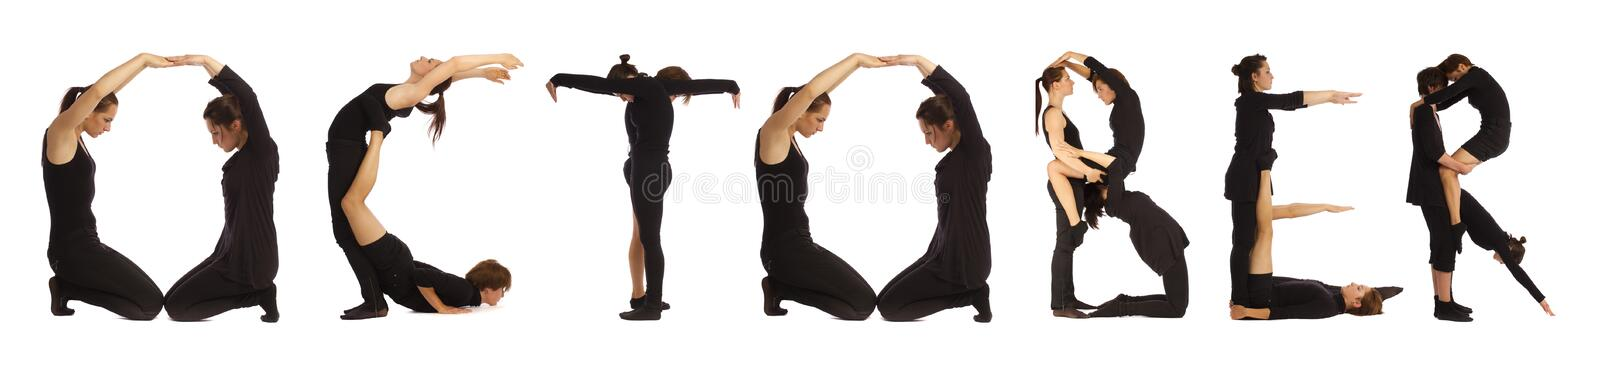 Download Black Dressed People Forming Word OCTOBER Stock Photo - Image: 92121656